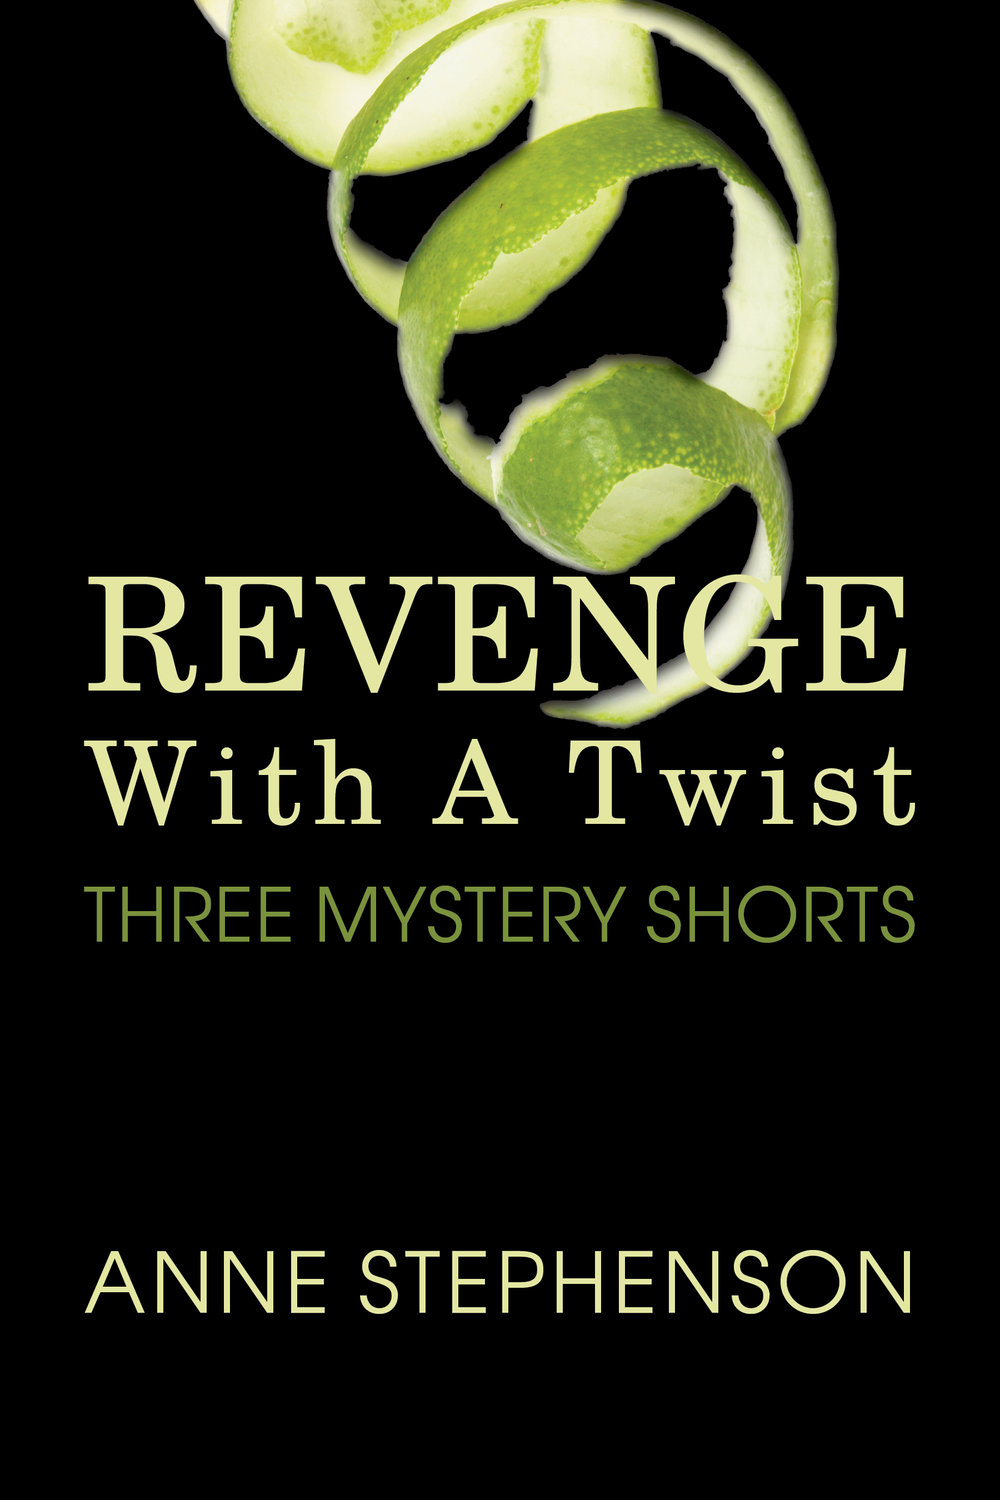 Revenge With A Twist by Anne Stephenson Available on Kobo and Kindle, as well as other ebook platforms!